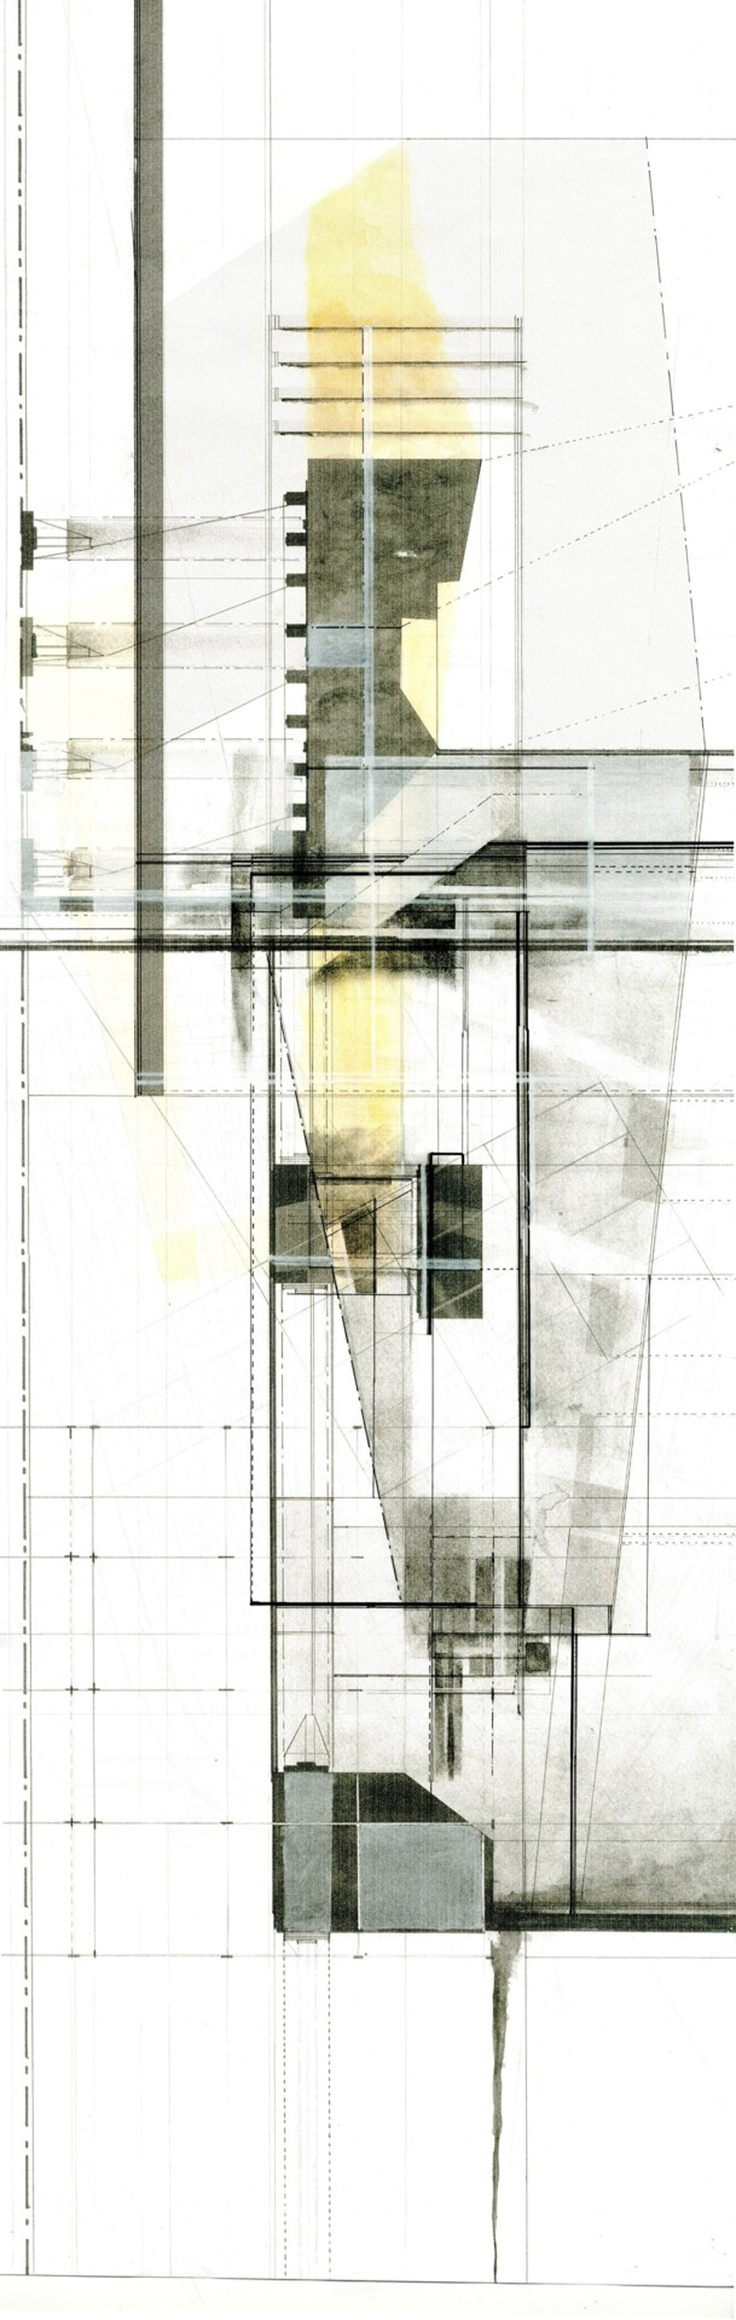 Vertical datum miguel castaneda 08 diagrams for Cheap architectural drawings